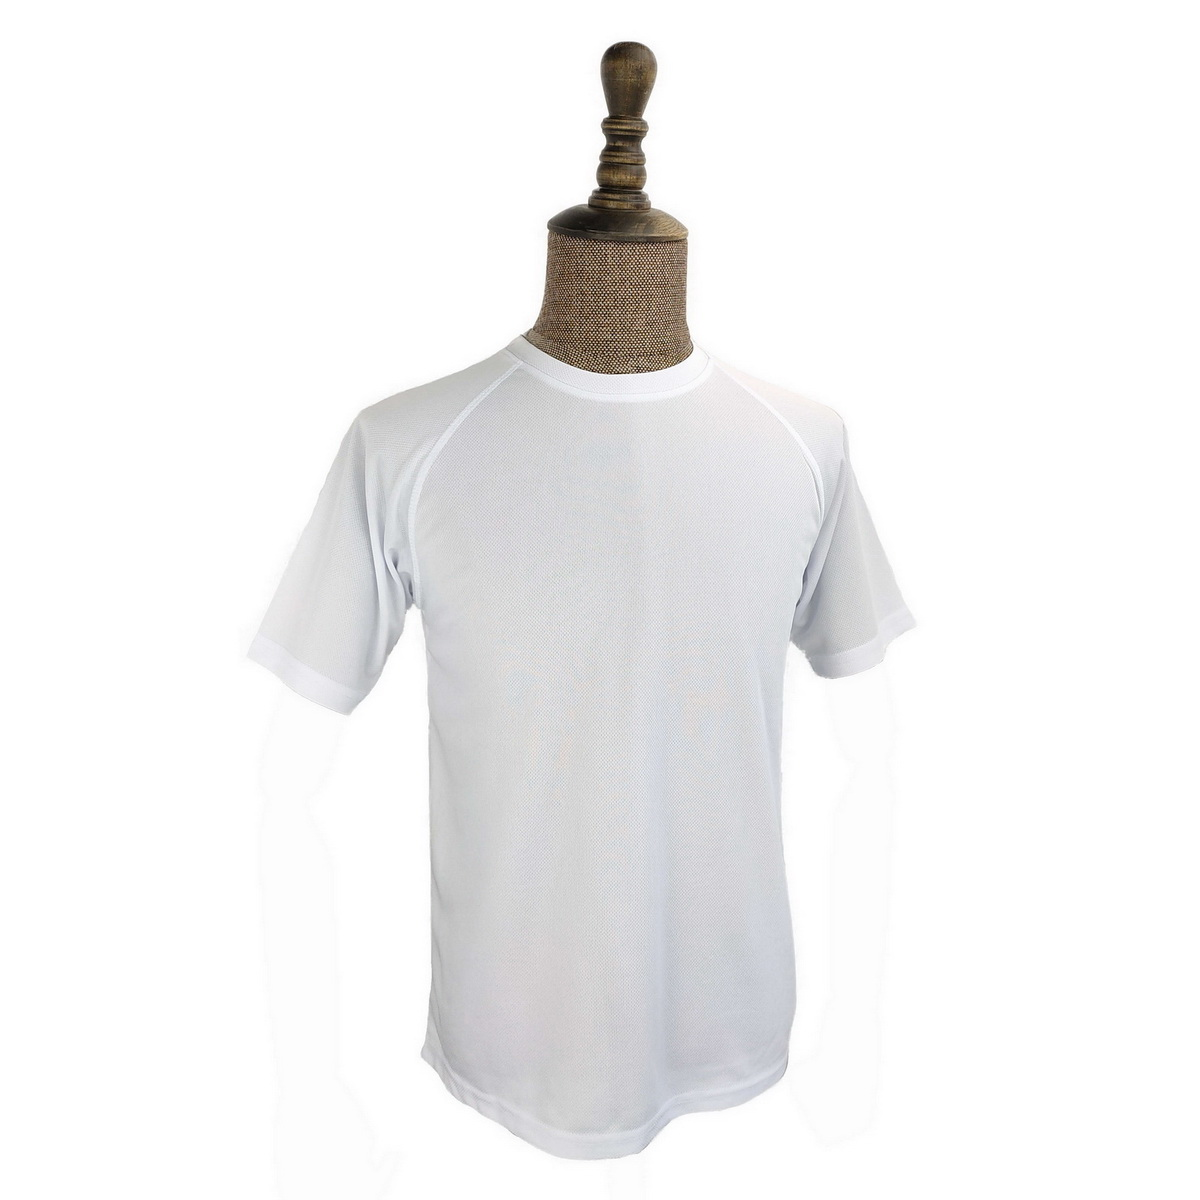 Men's Dry Fit Tee(STOCK)